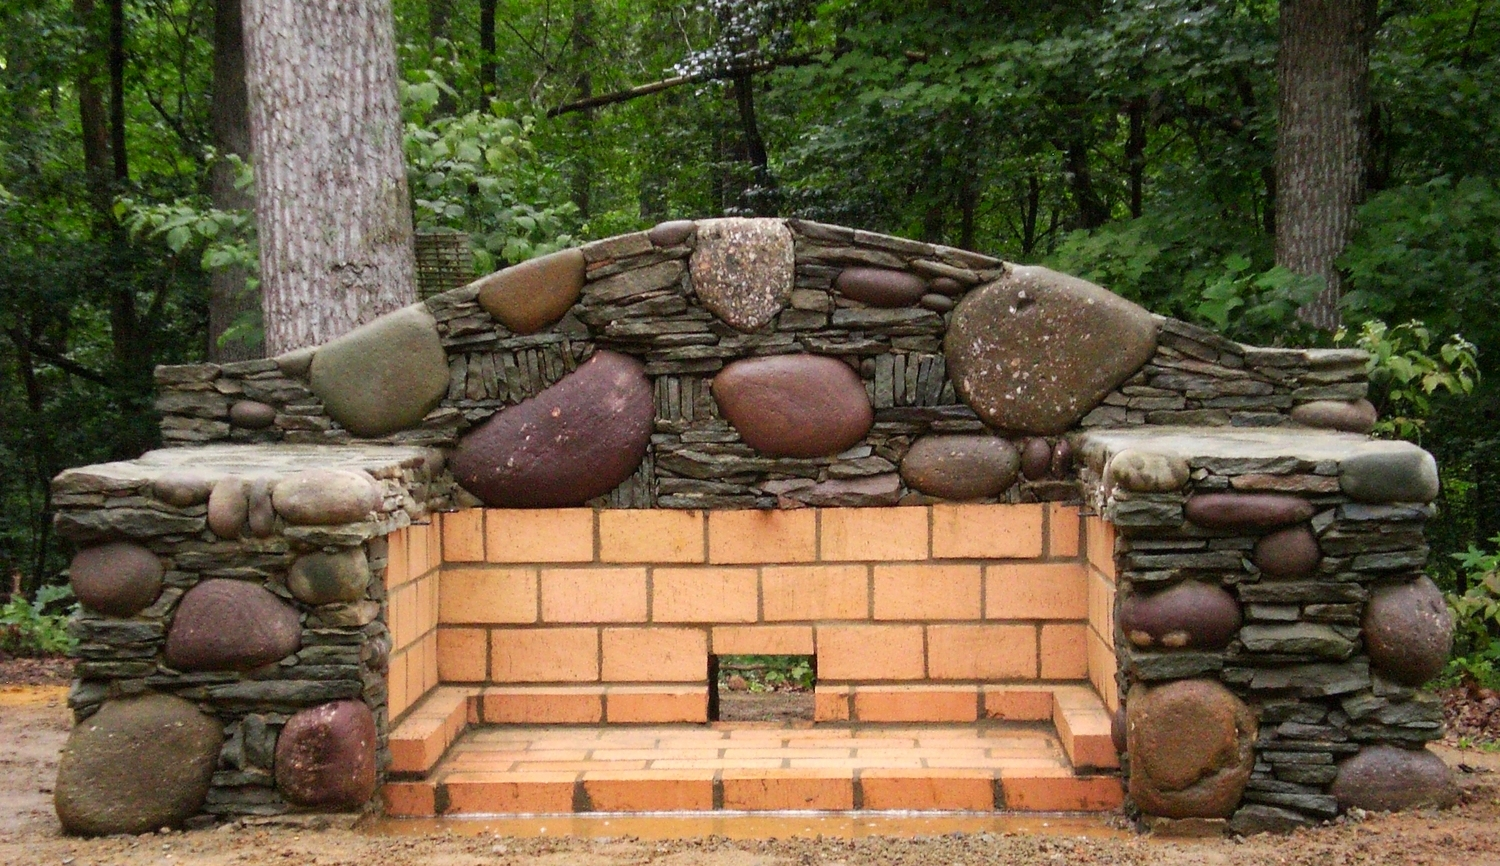 Stone grill and firepit